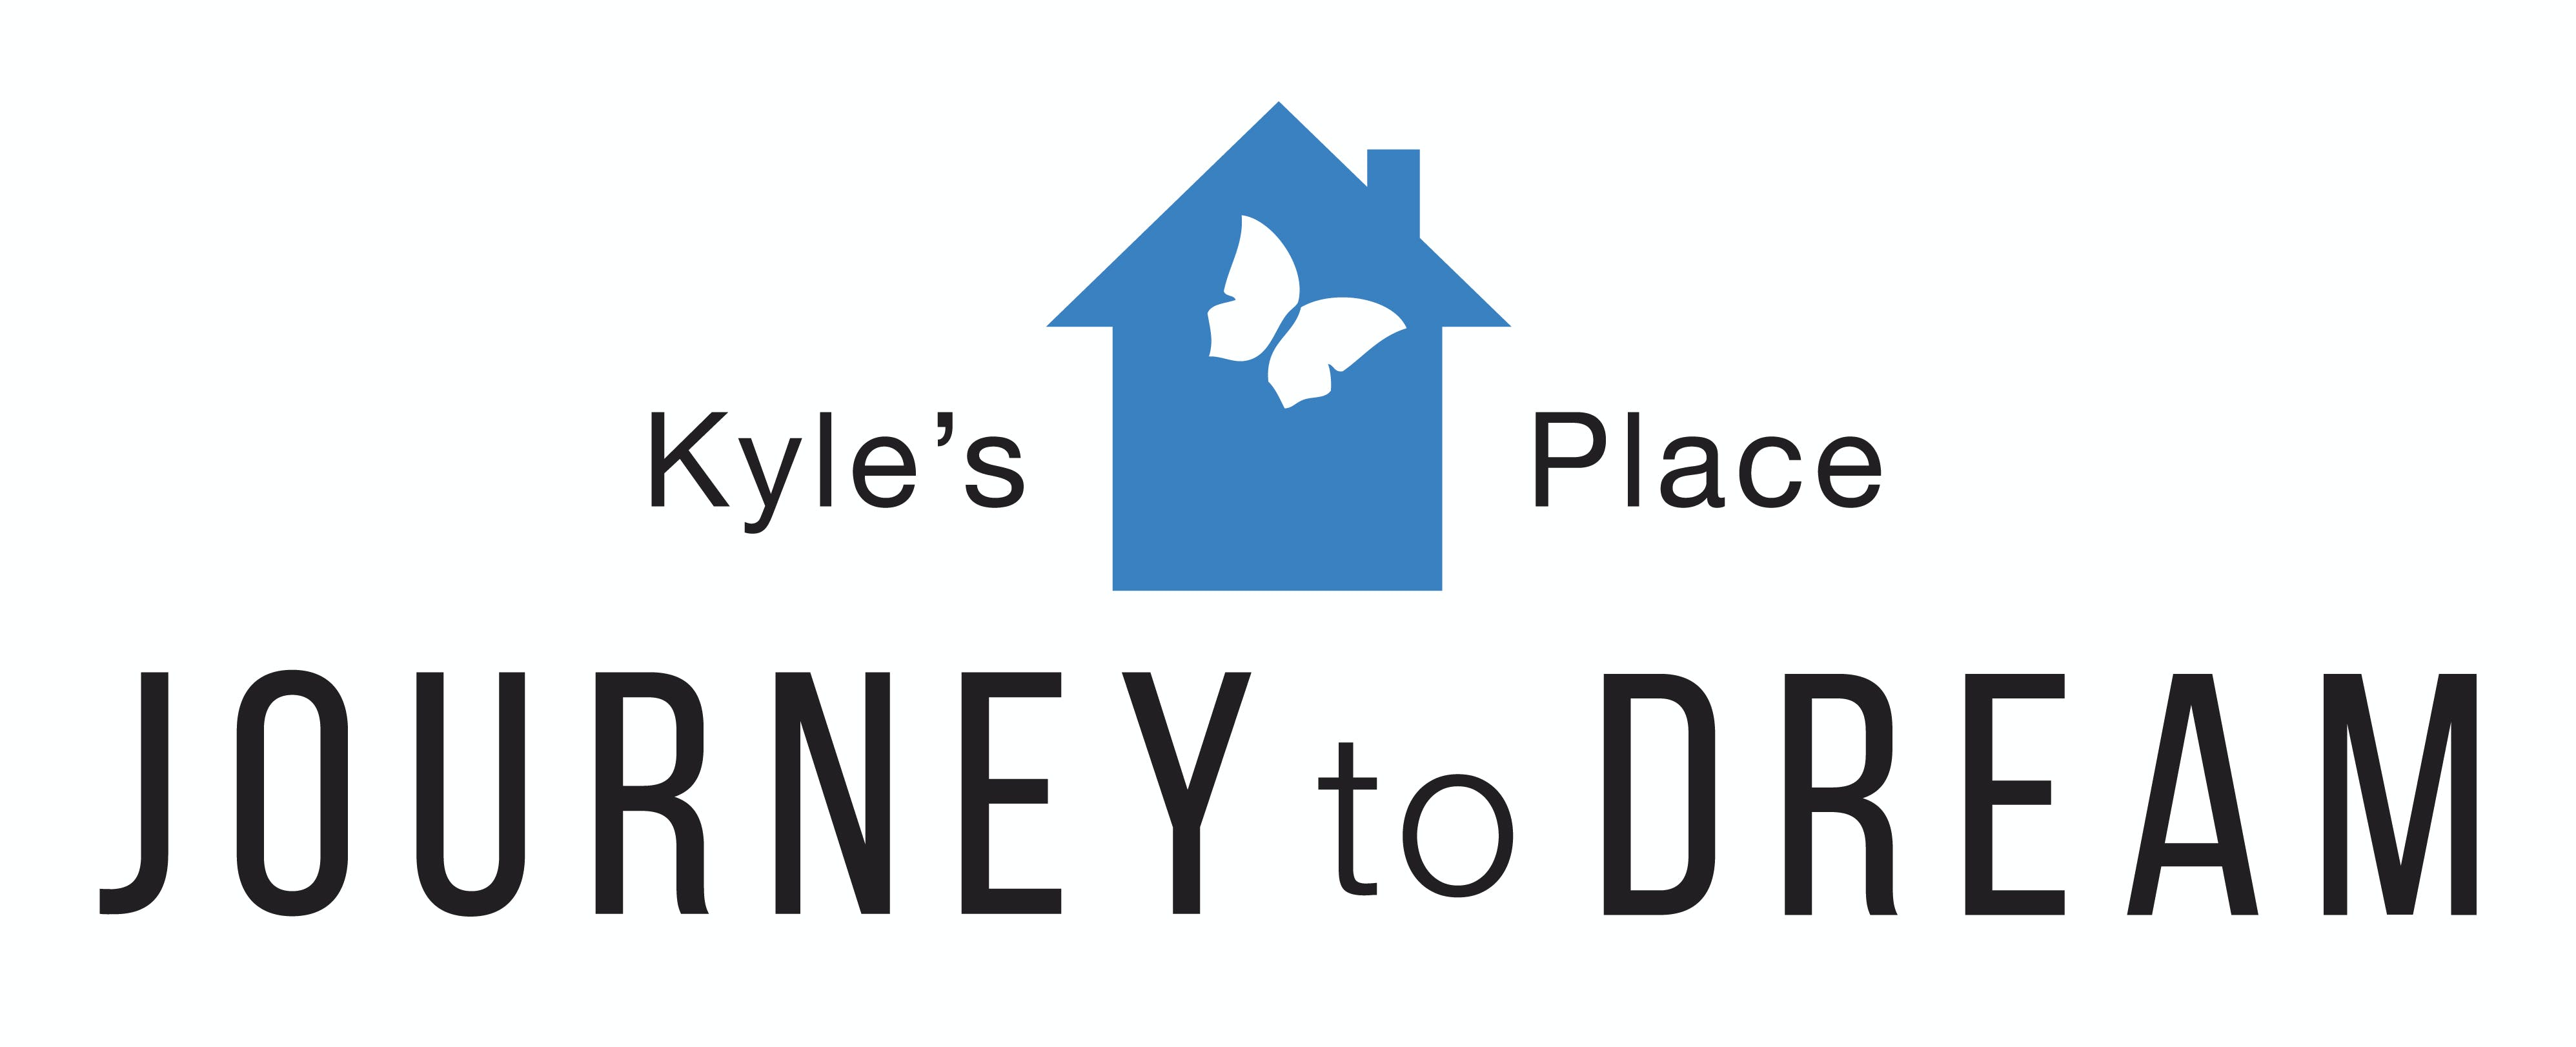 Journey to Dream - Hope for North Texas Teens - Kyle's Place